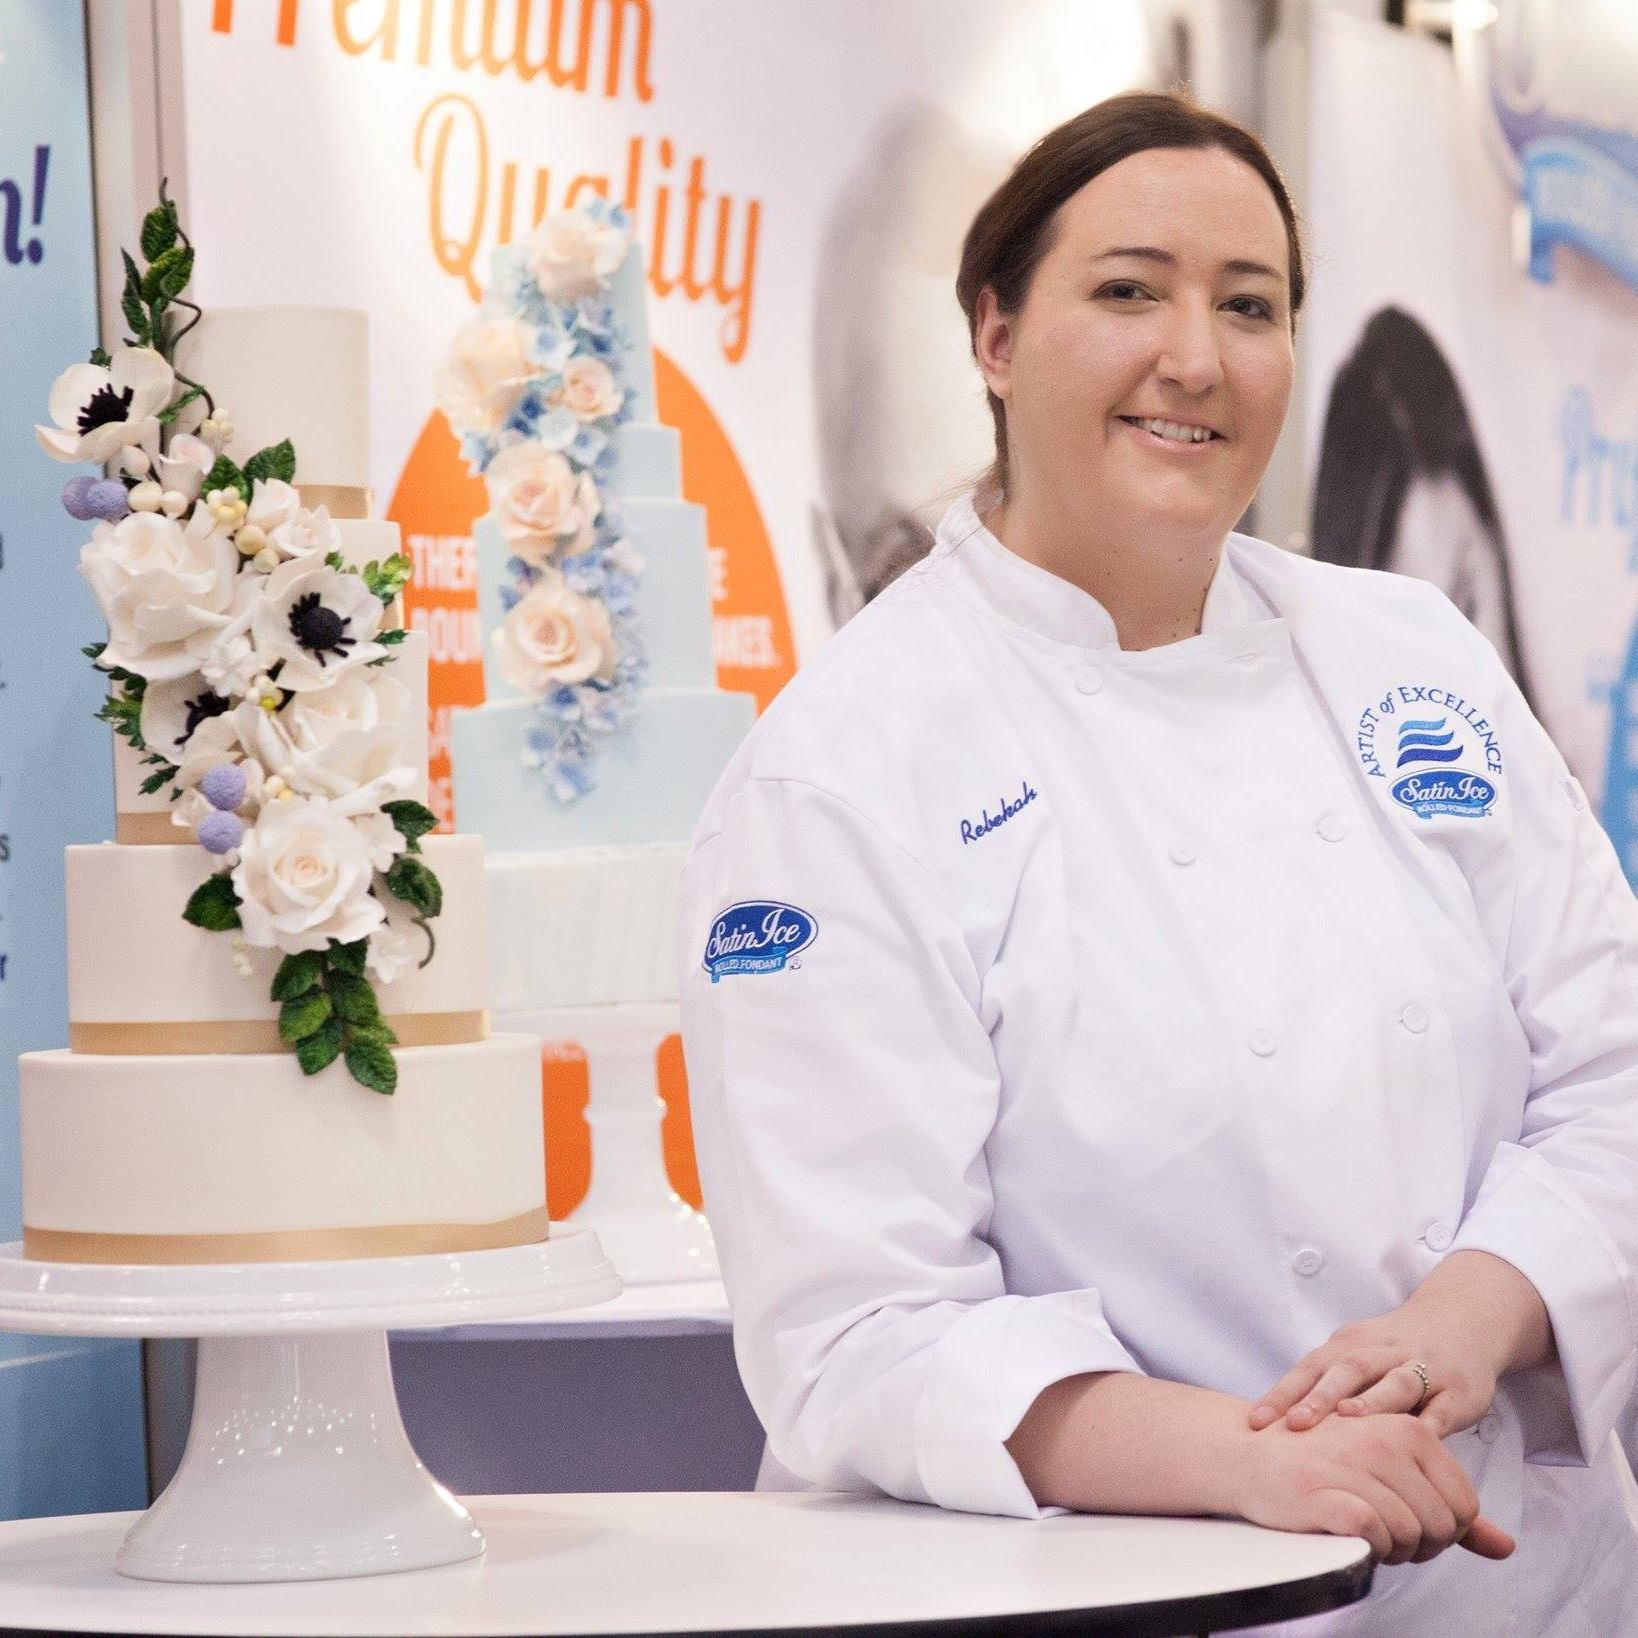 Rebekah Wilbur, owner of Rebekah Naomi Cake Artistry, a Virginia-based wedding cake shop